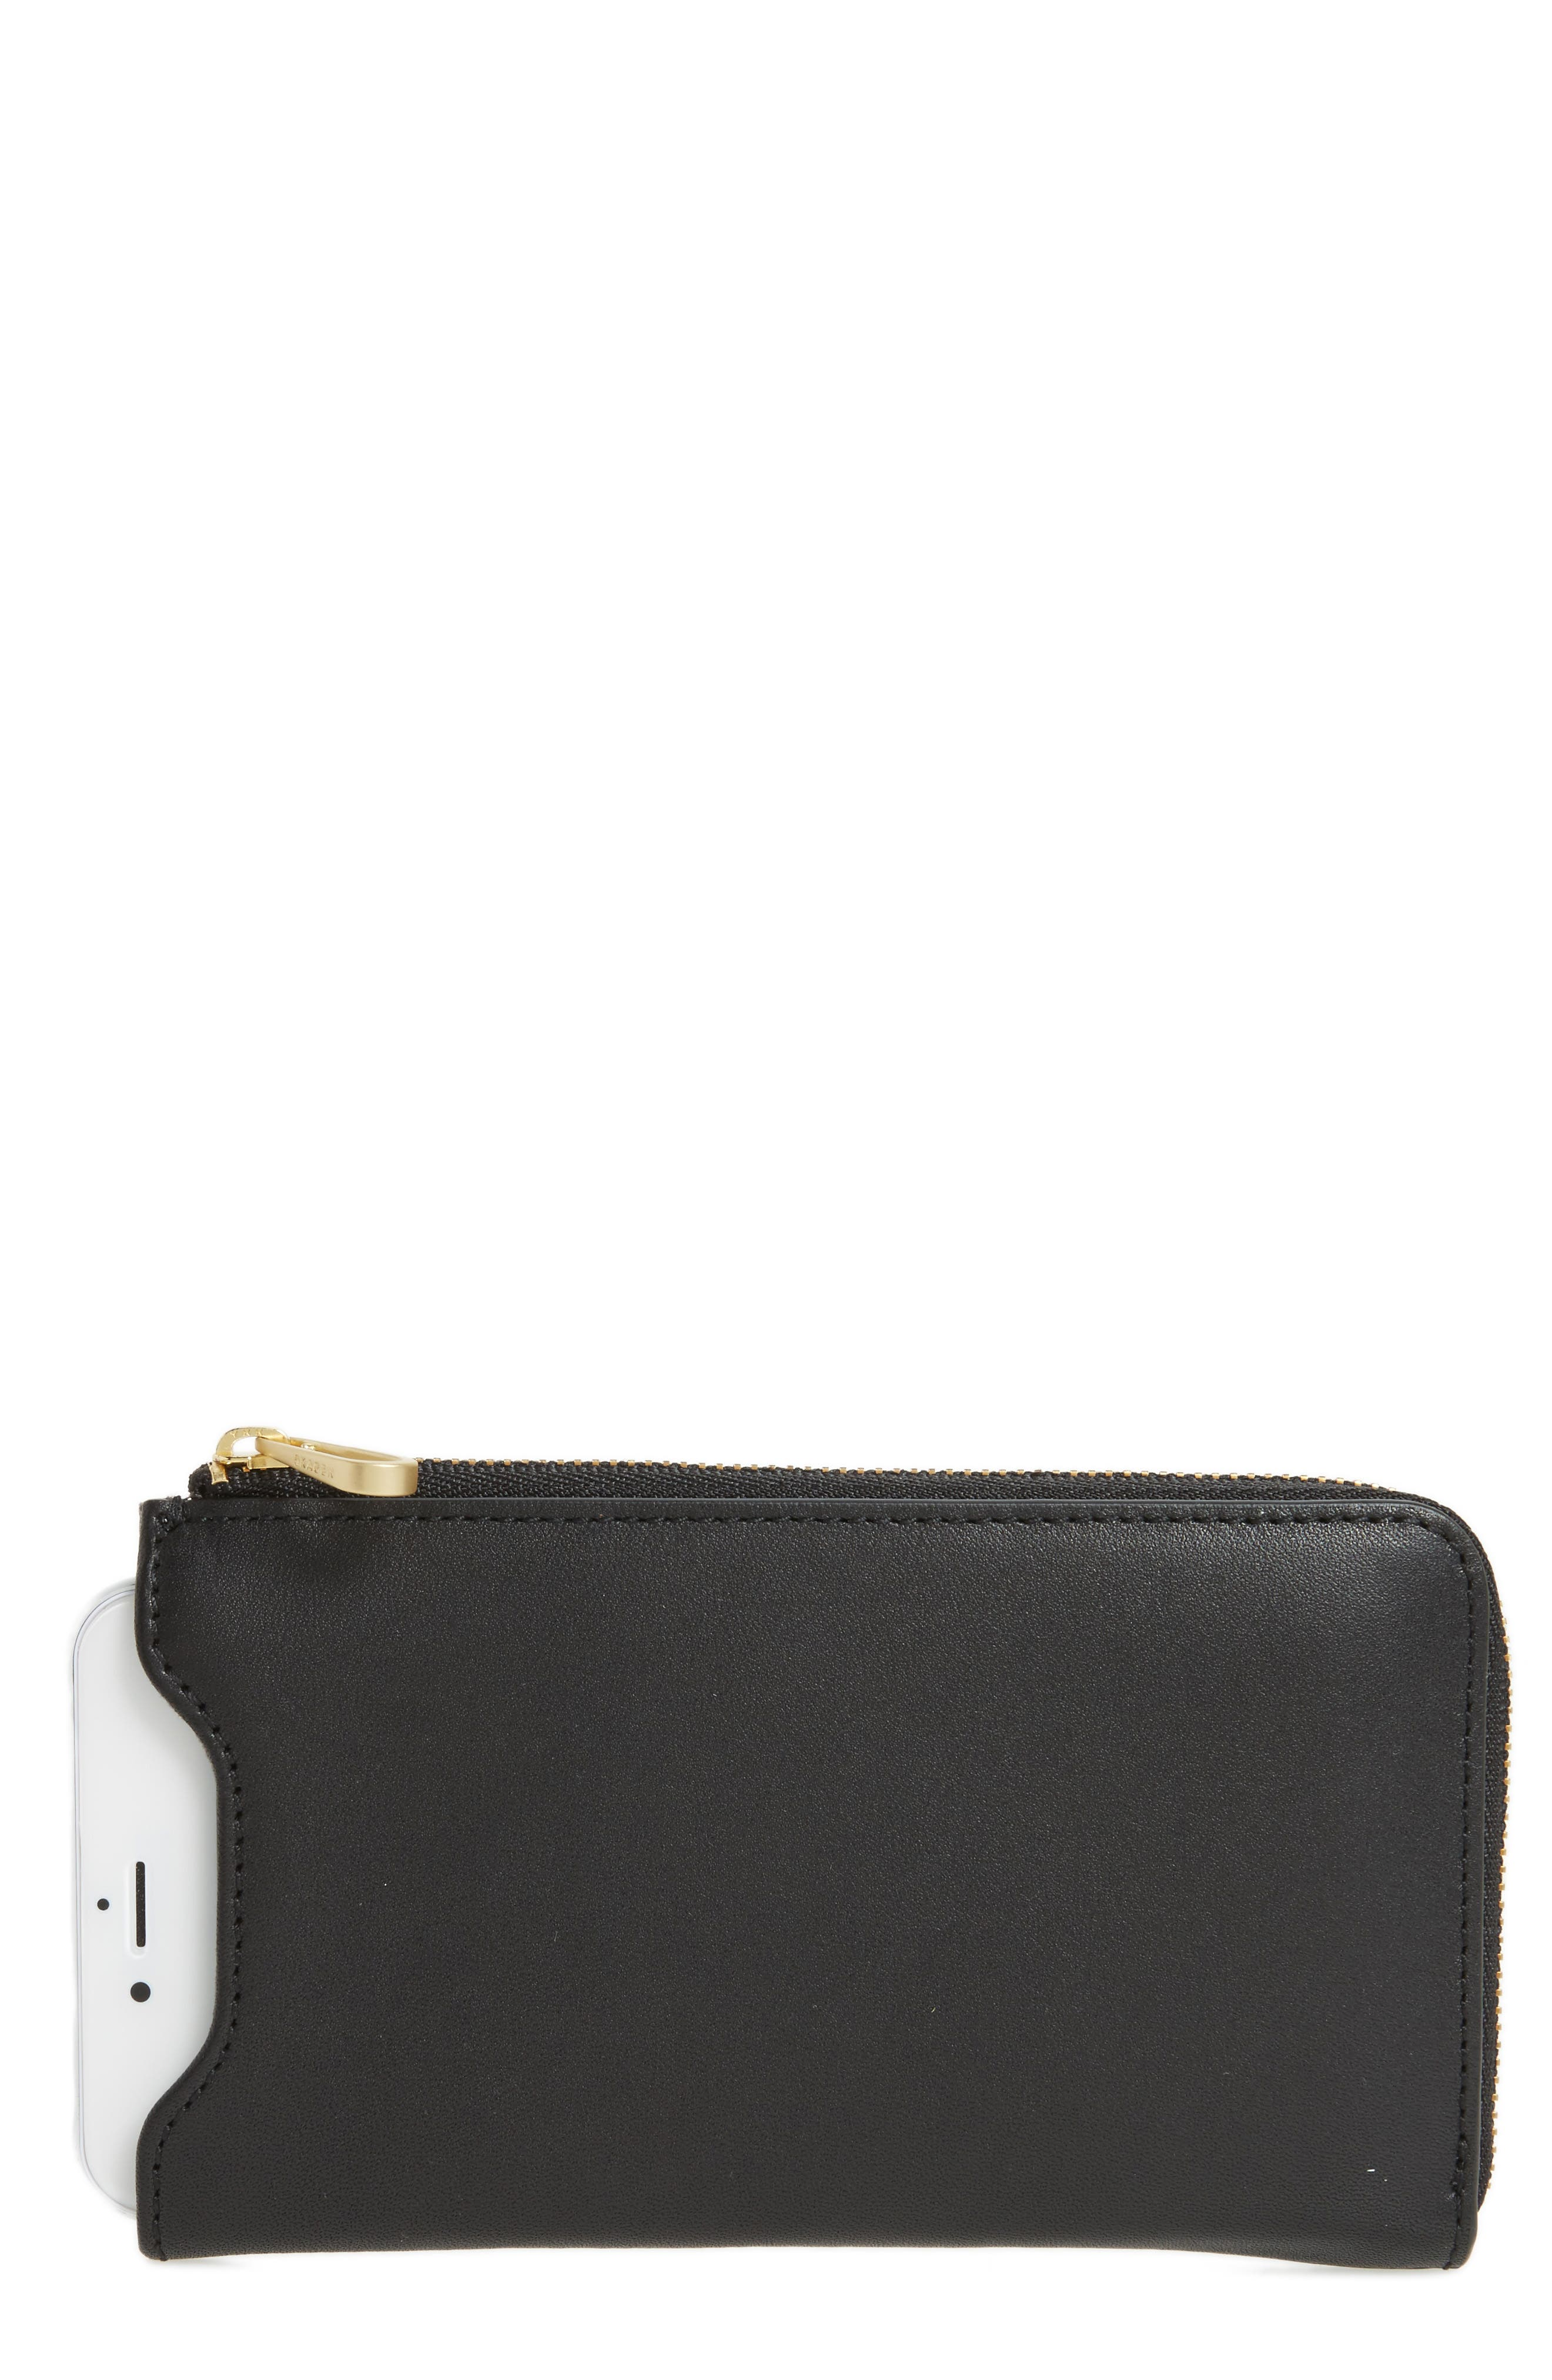 Lilli iPhone 6/6s/7 Leather Sleeve,                             Main thumbnail 1, color,                             001